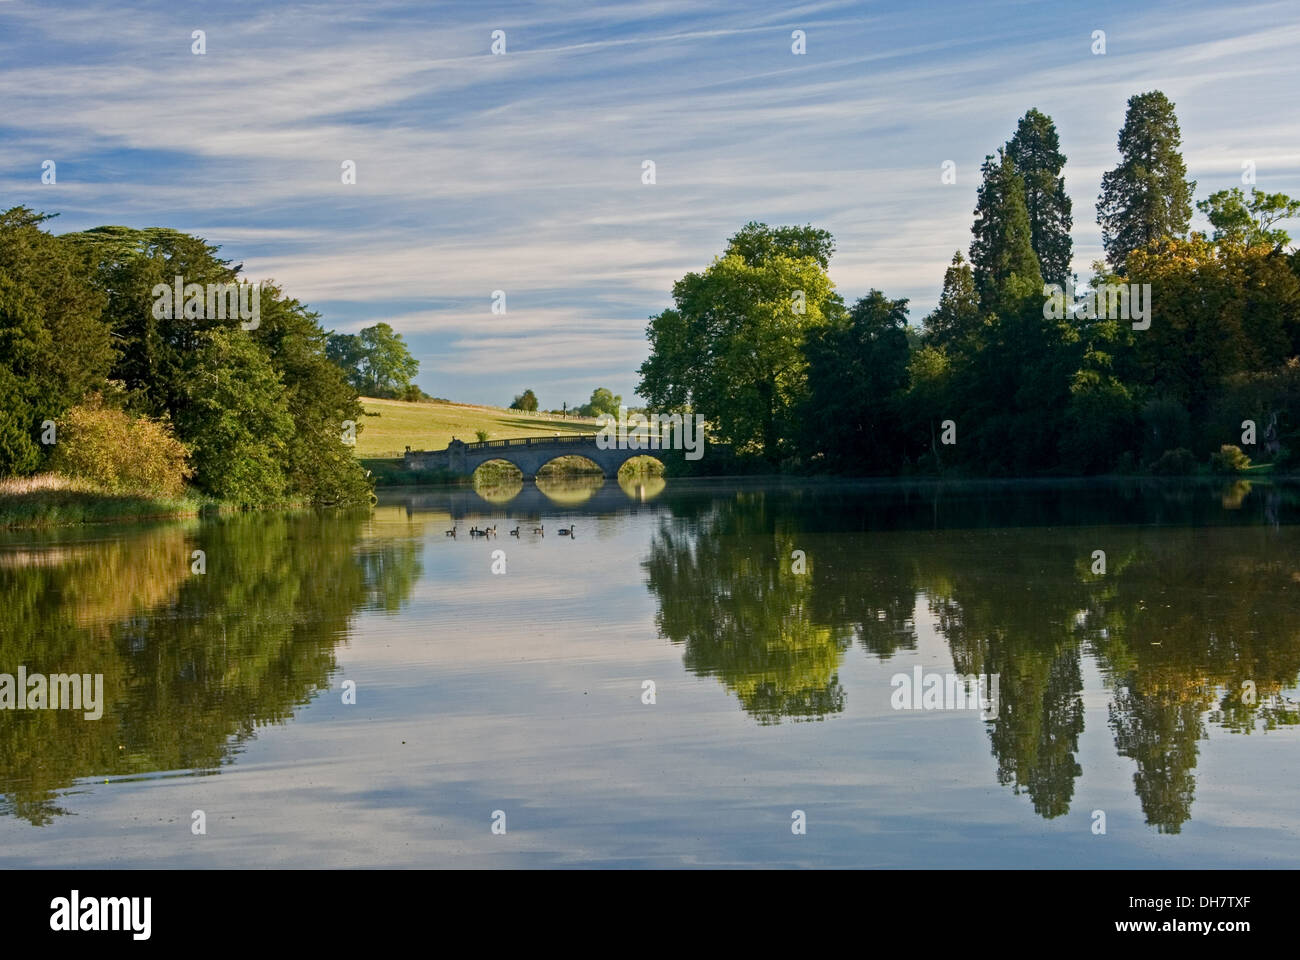 Early morning reflections in the lake at Compton Verney in South Warwickshire. - Stock Image